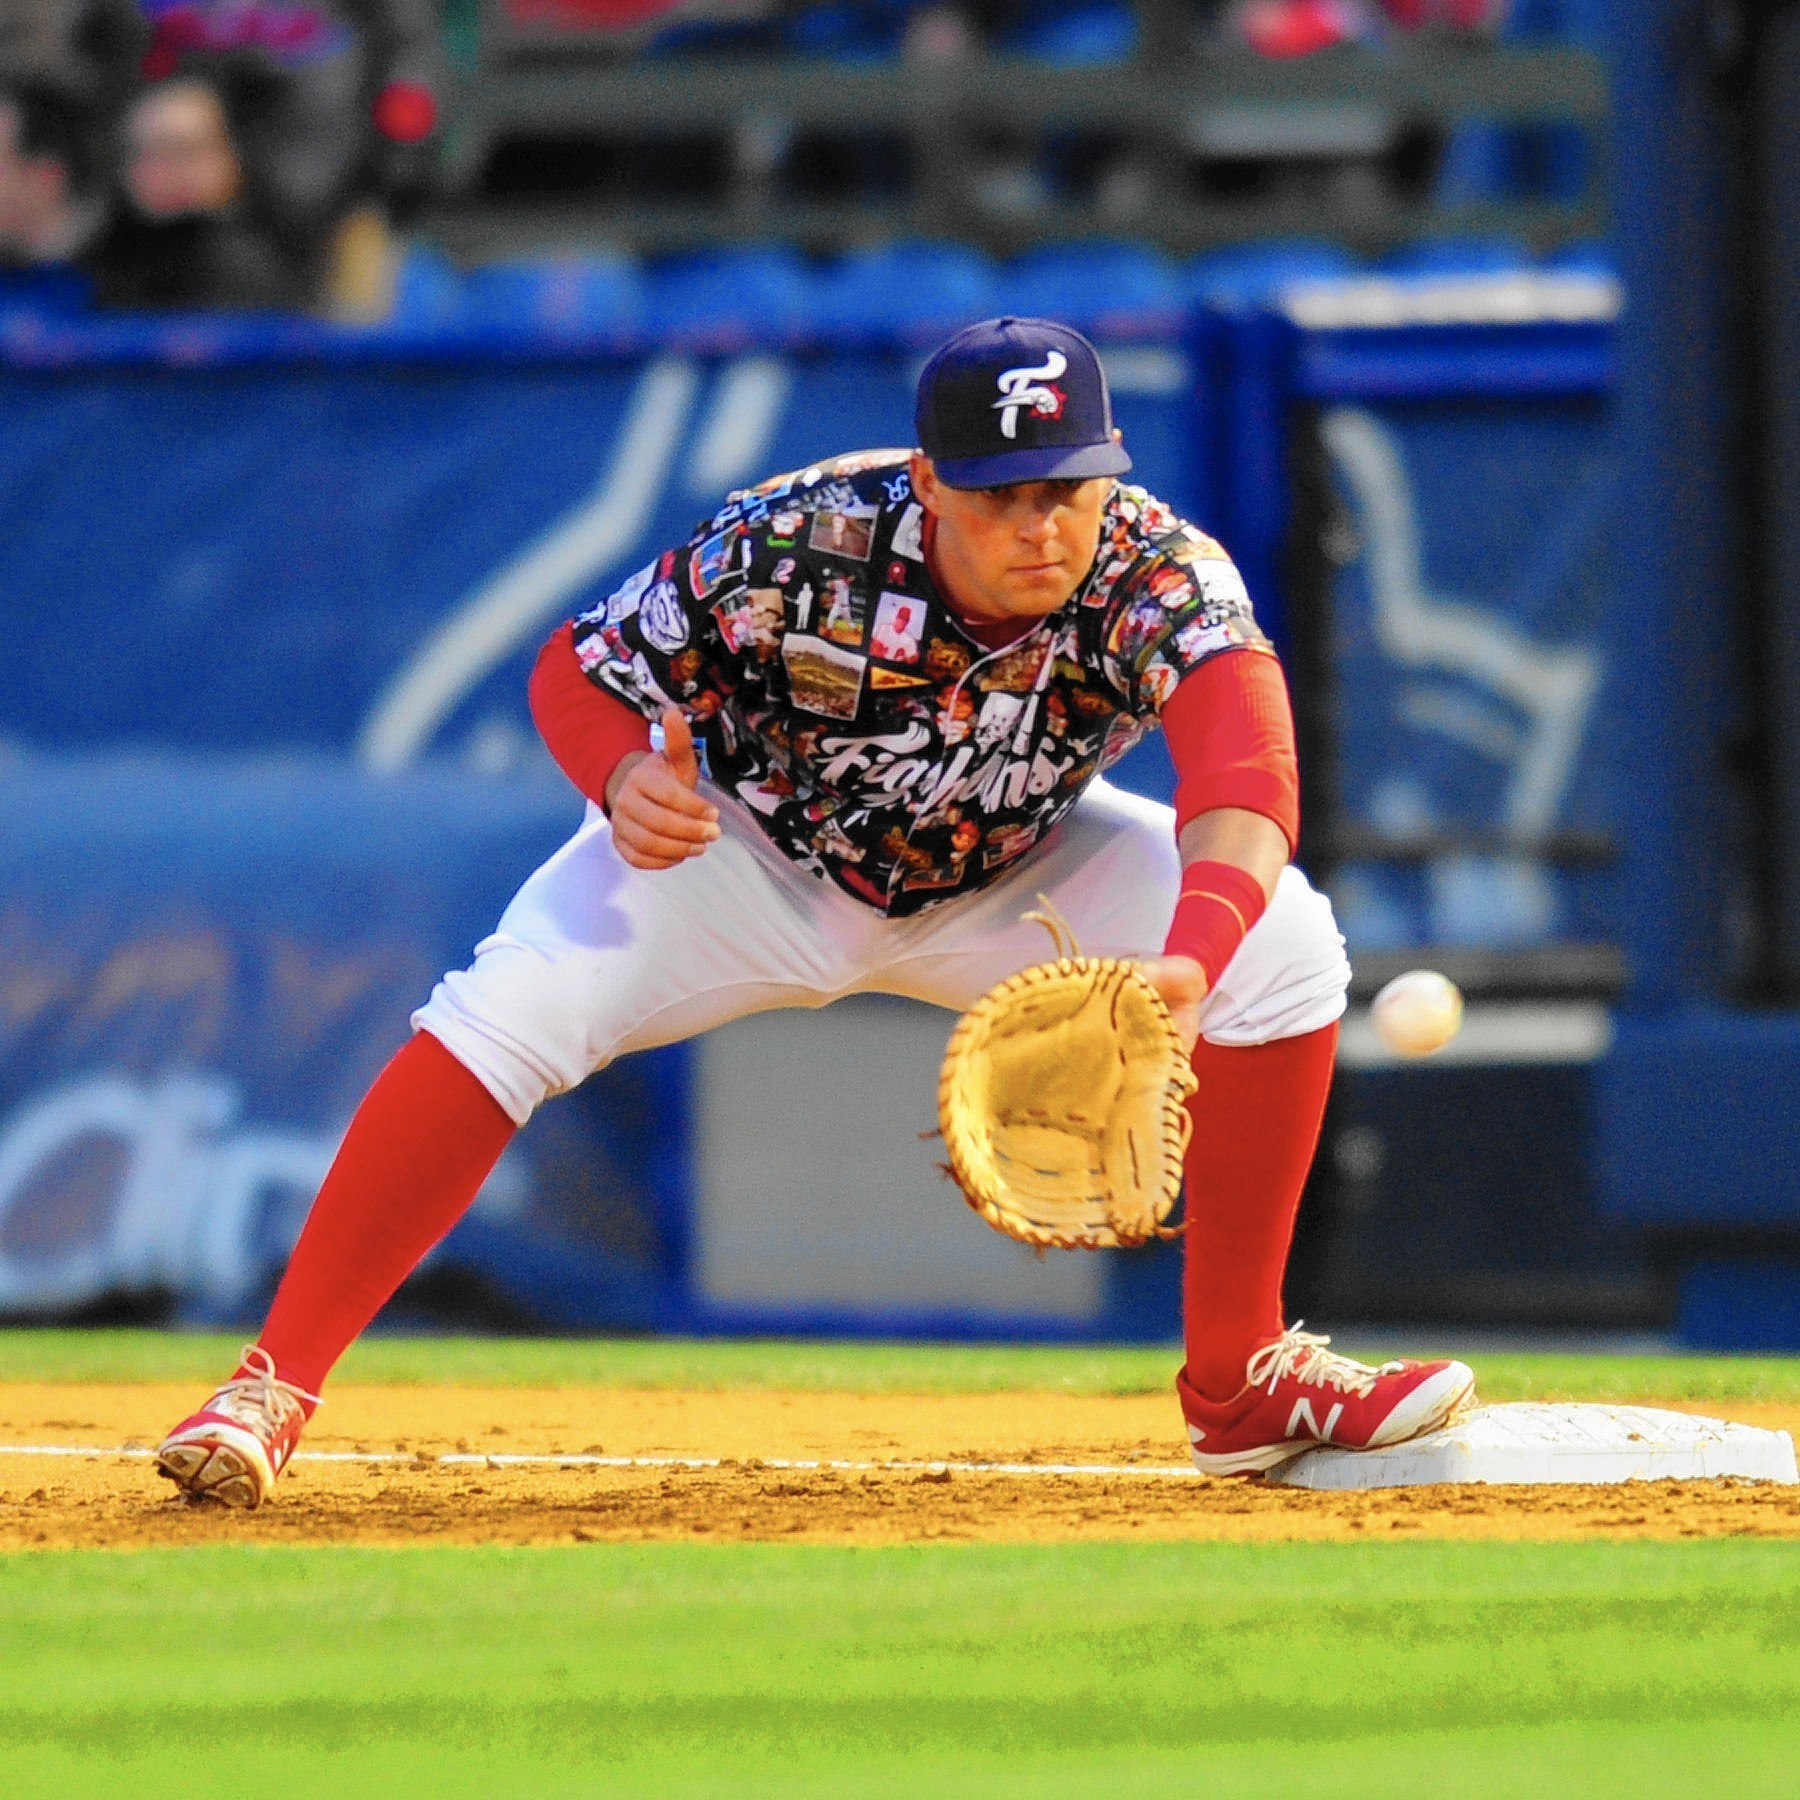 Mc-reading-fightins-season-opener-0407-20160407